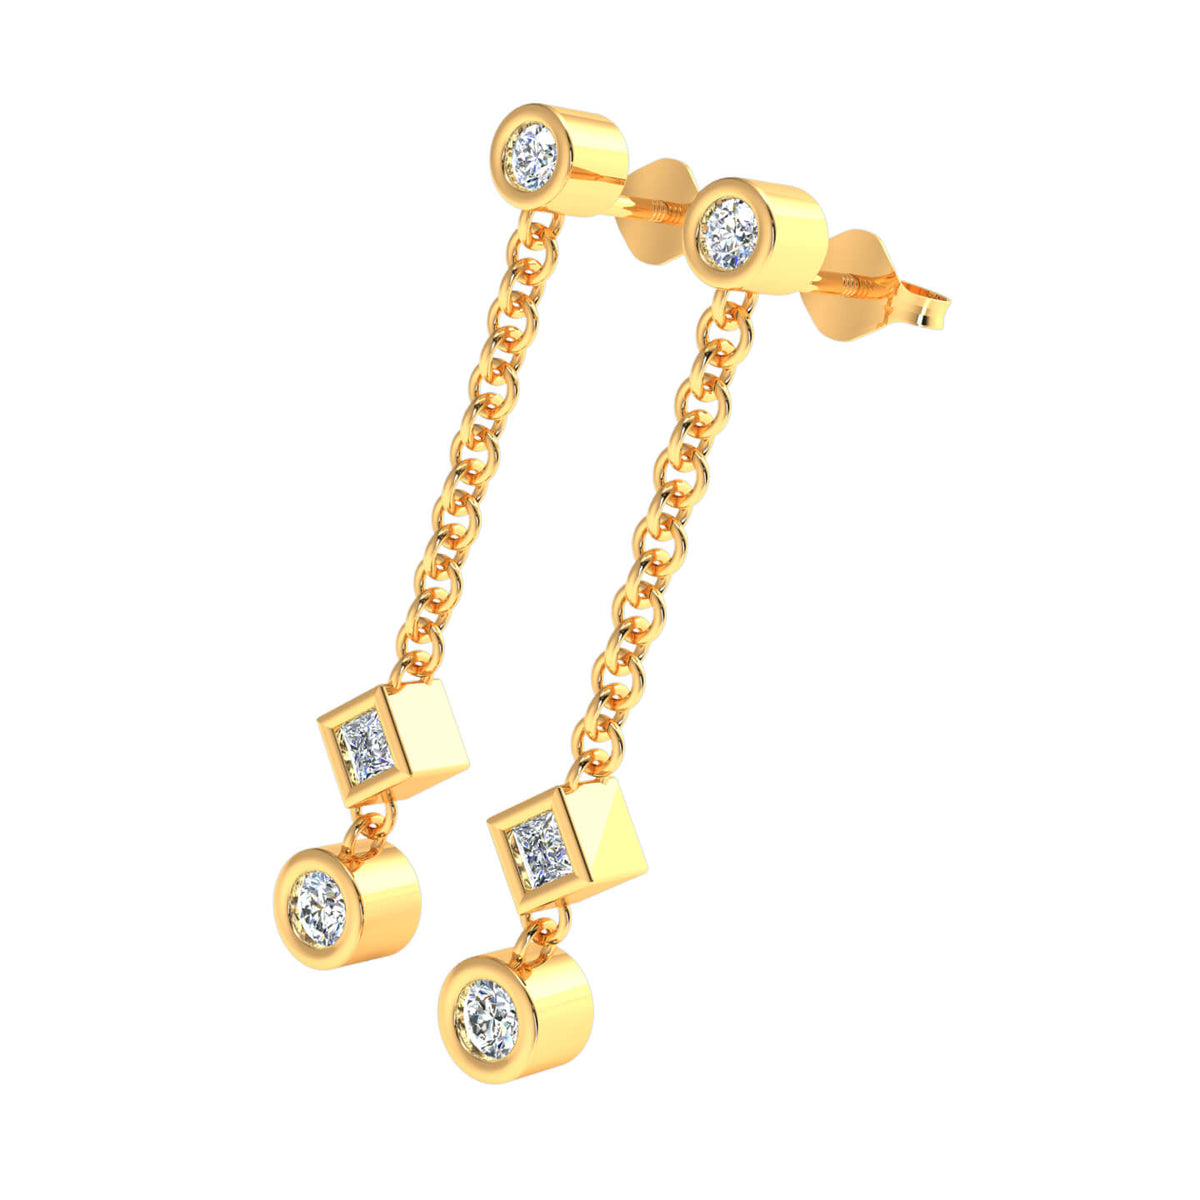 0.33 Ct Alternative 3 Stones Womens Dangling Earrings 14k Gold